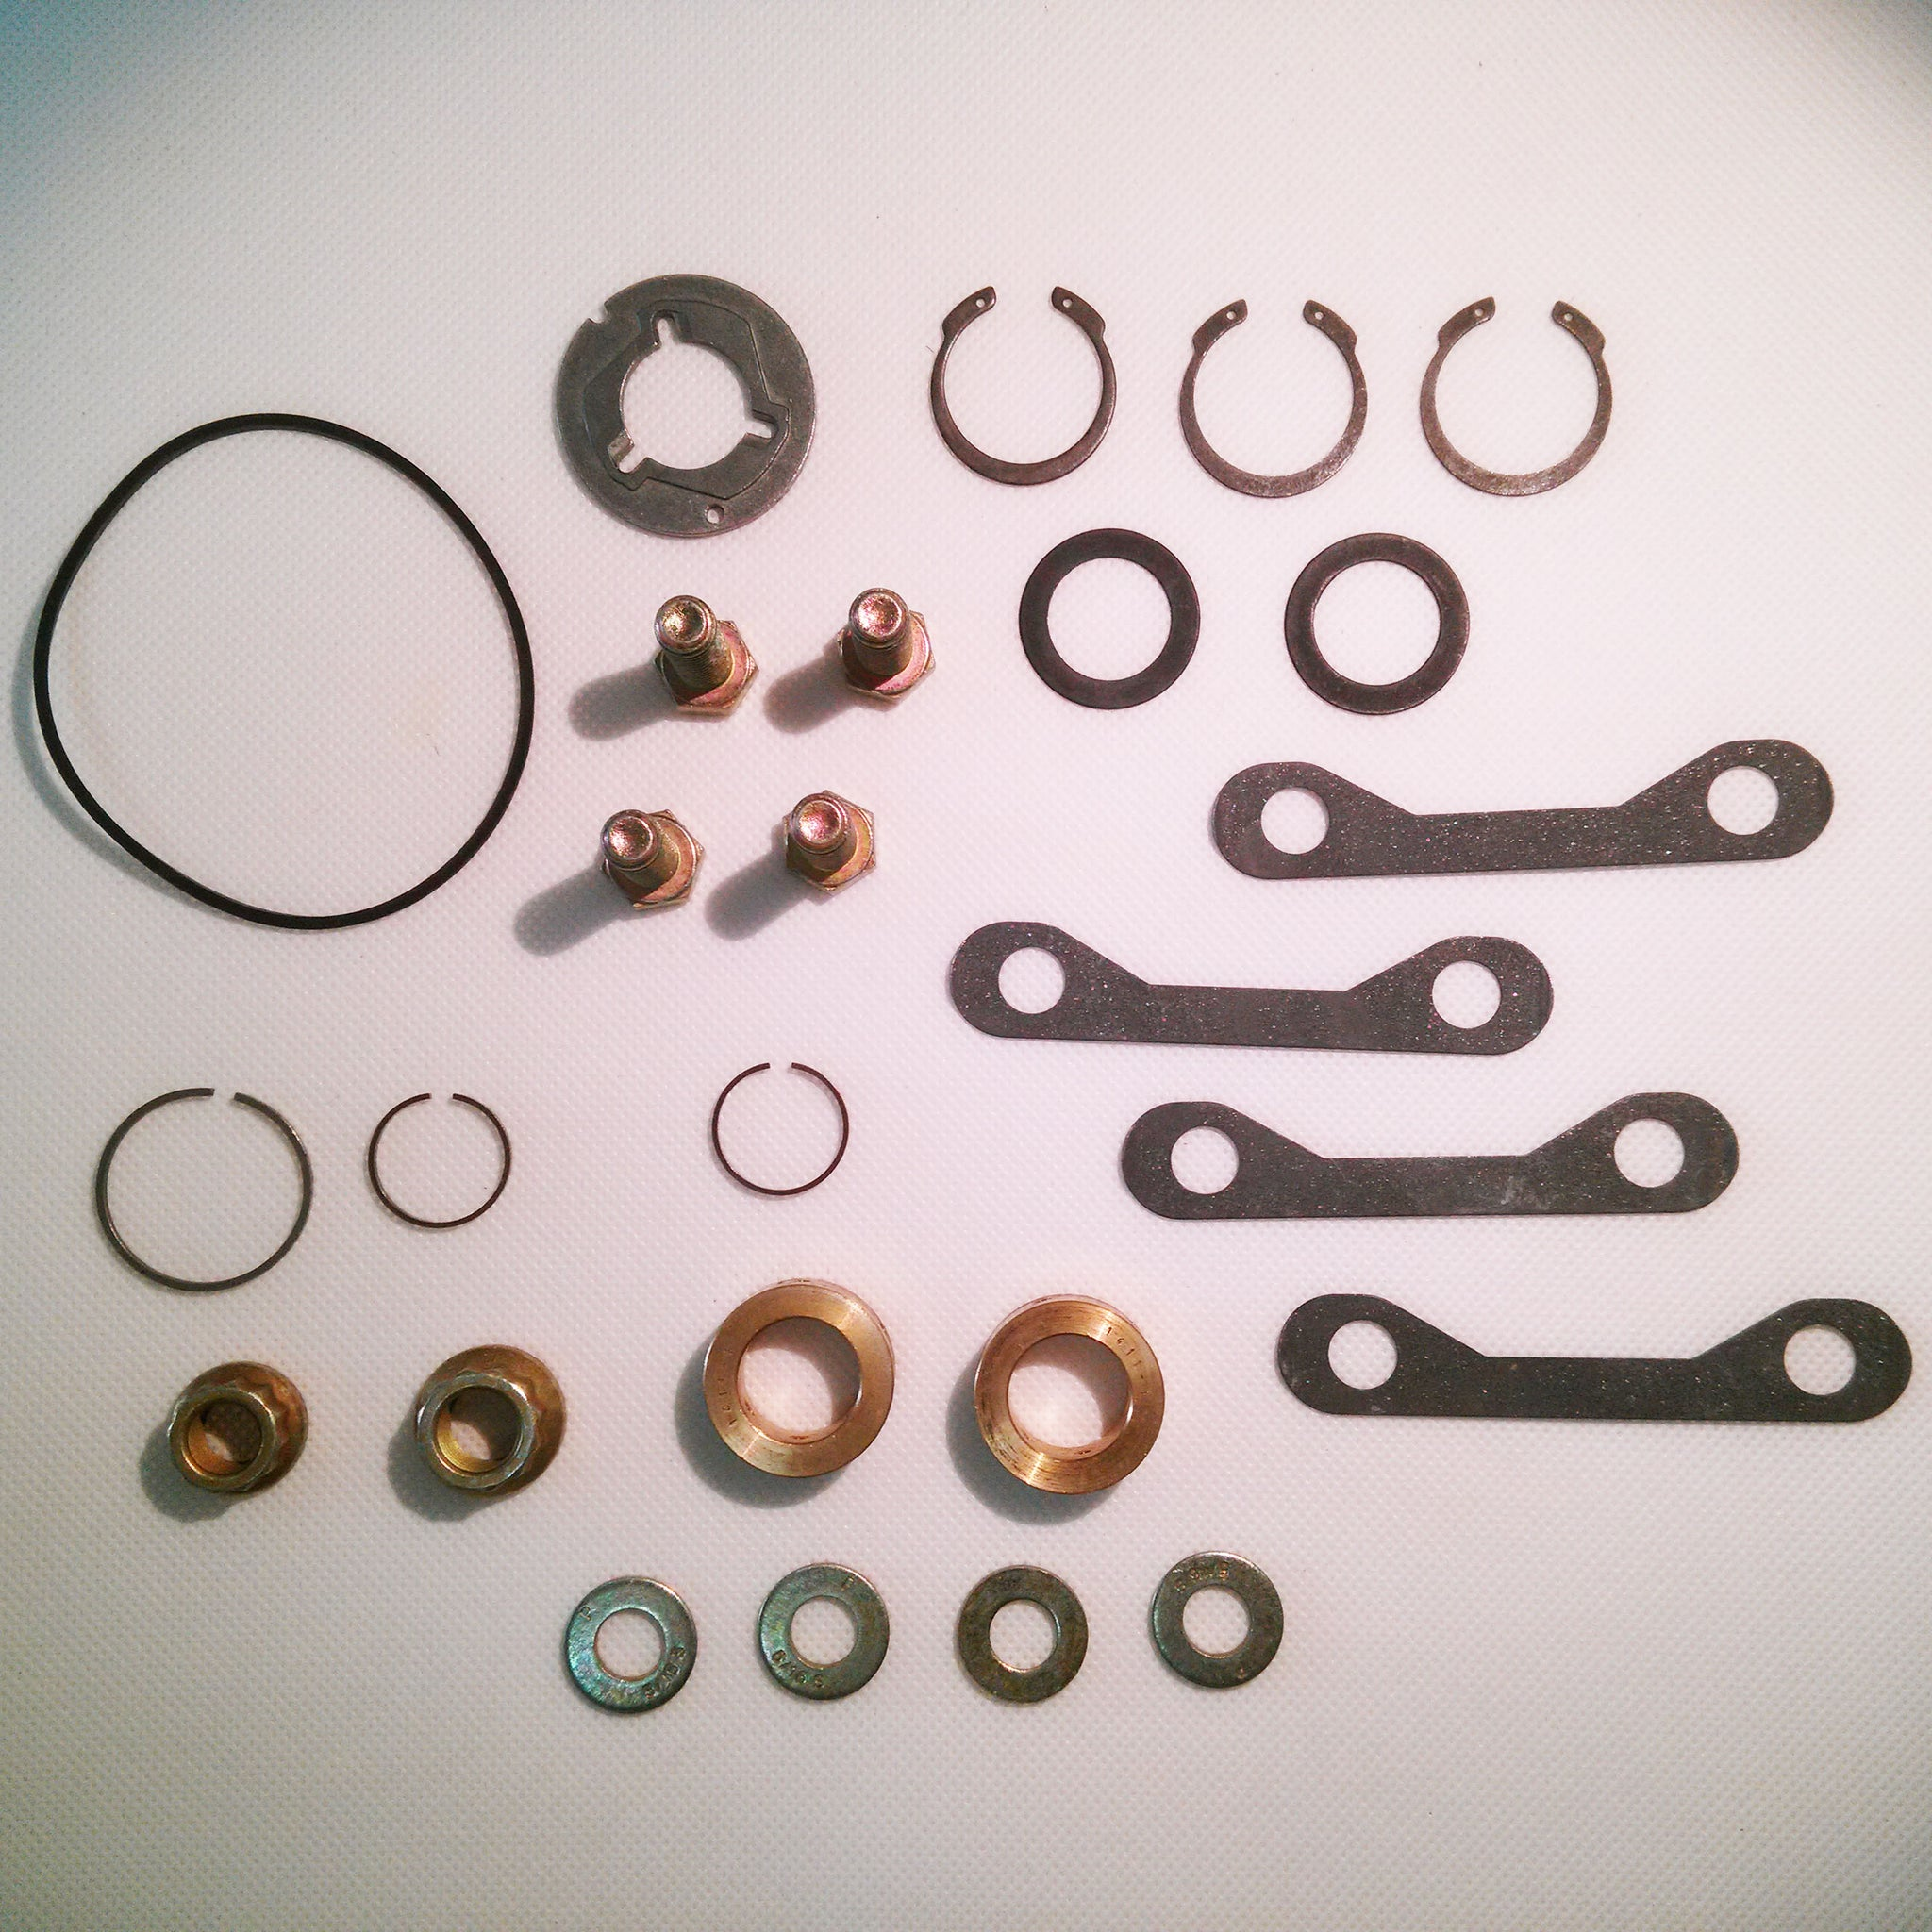 NEW TV71 Turbocharger Repair Kit